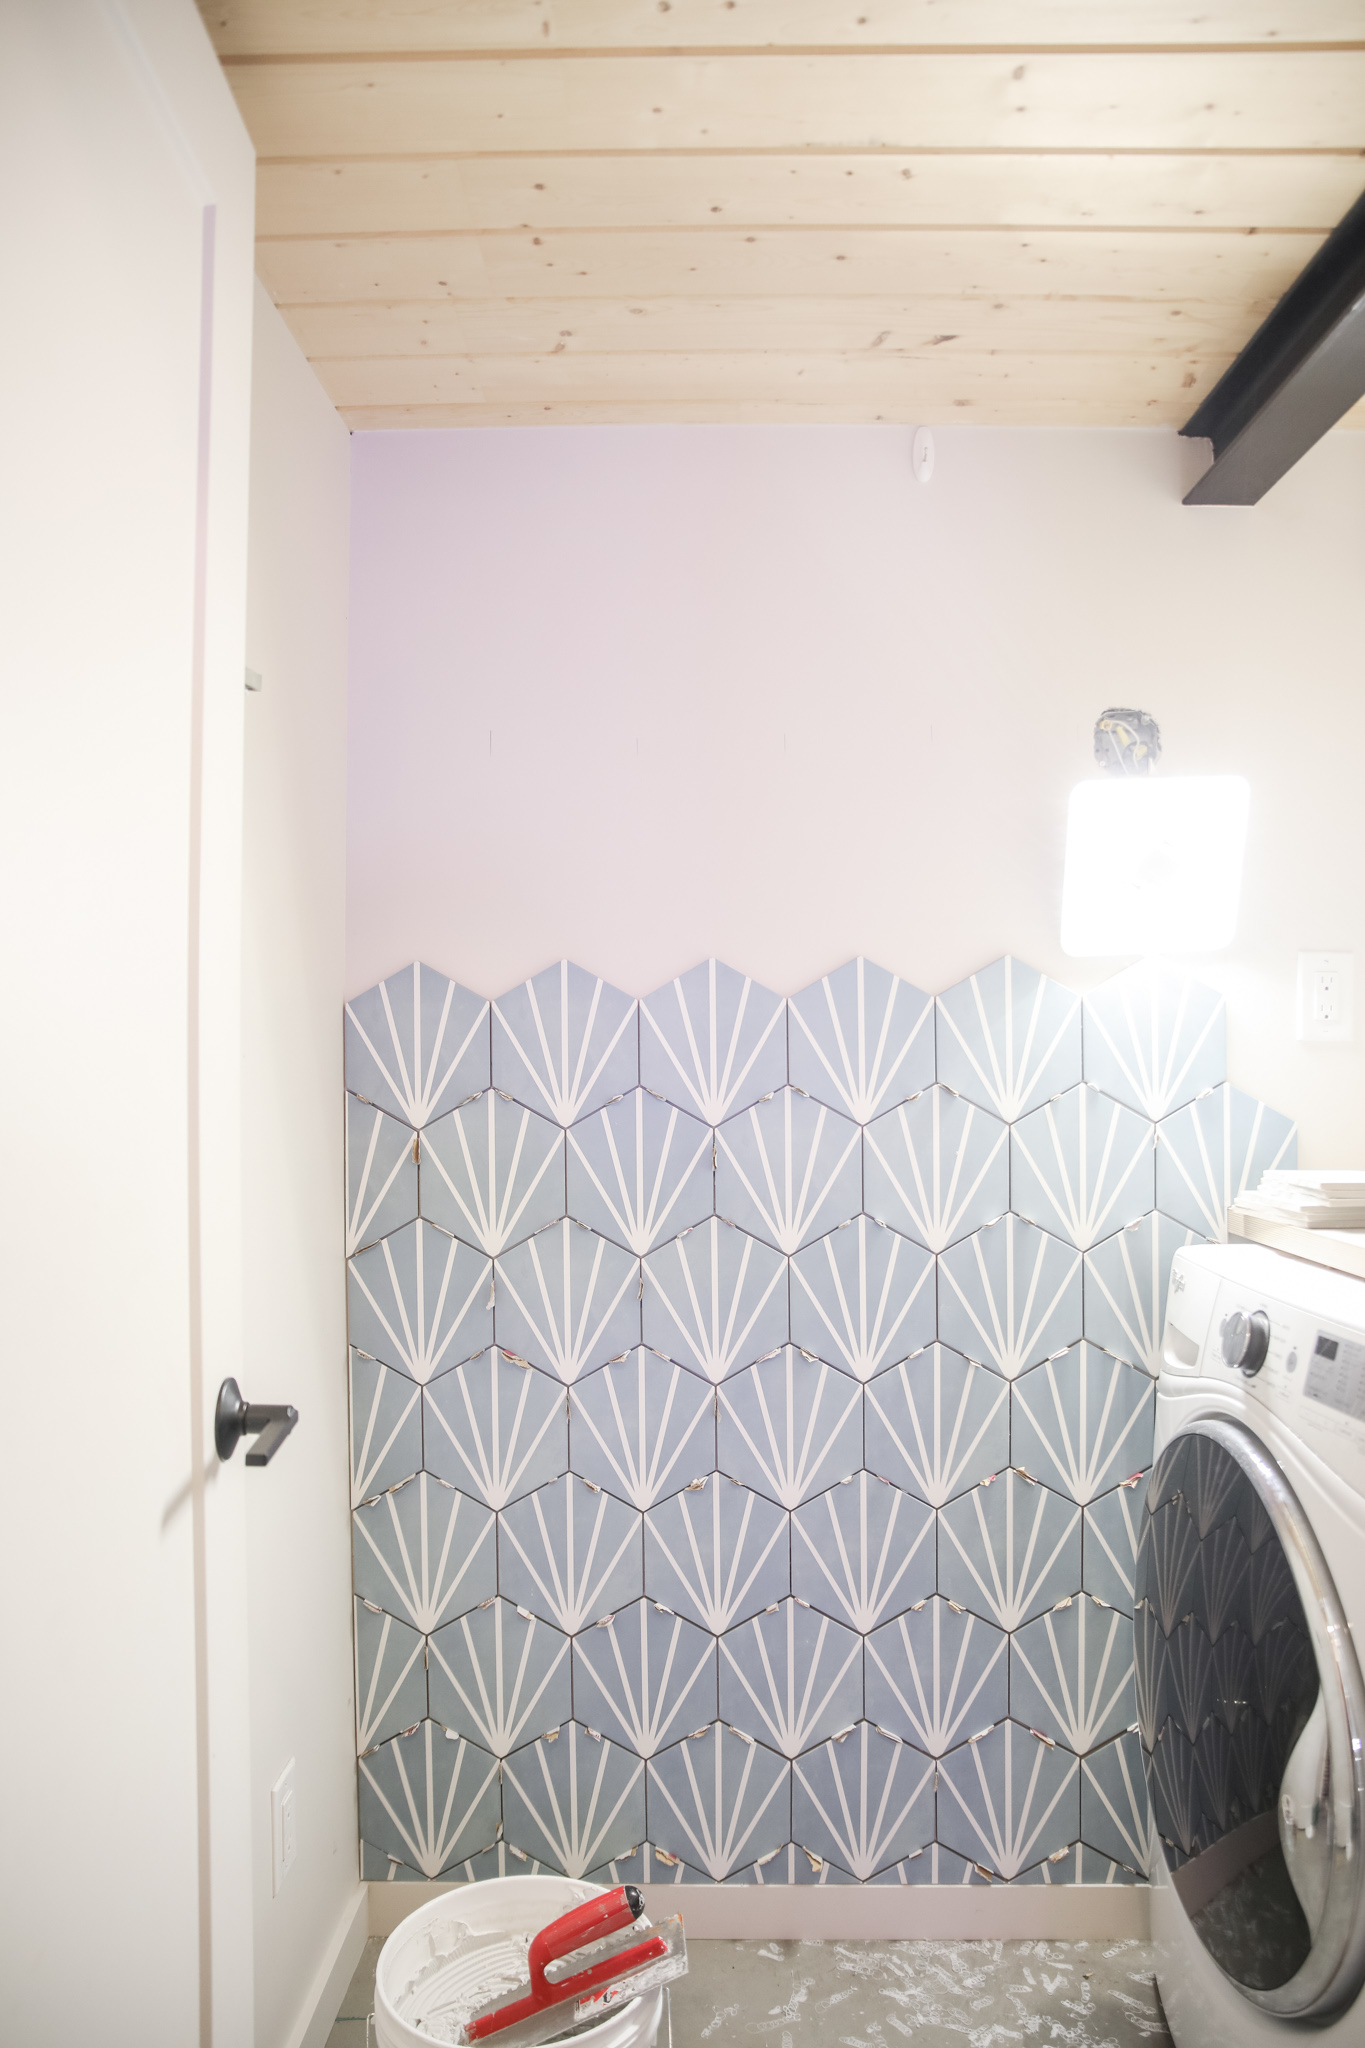 Tile Design in laundry room